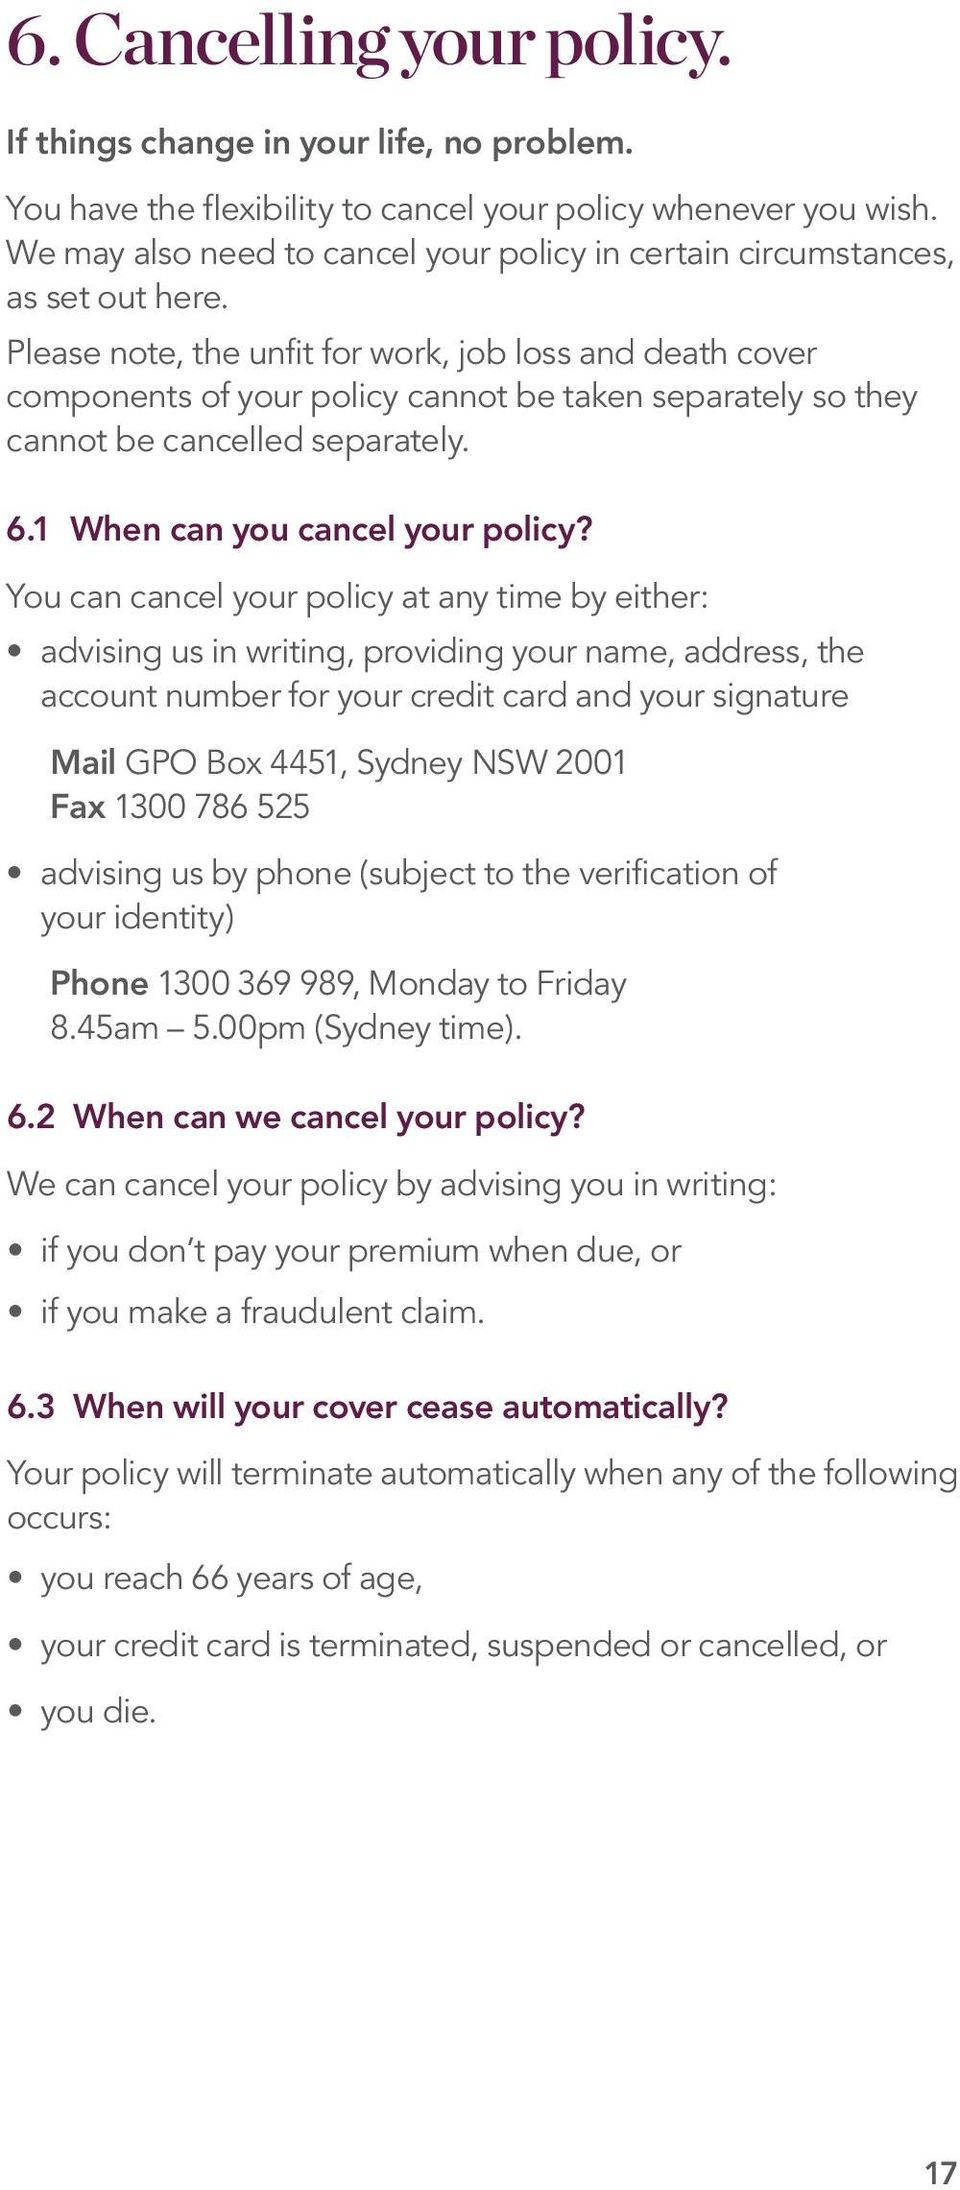 Please note, the unfit for work, job loss and death cover components of your policy cannot be taken separately so they cannot be cancelled separately. 6.1 When can you cancel your policy?